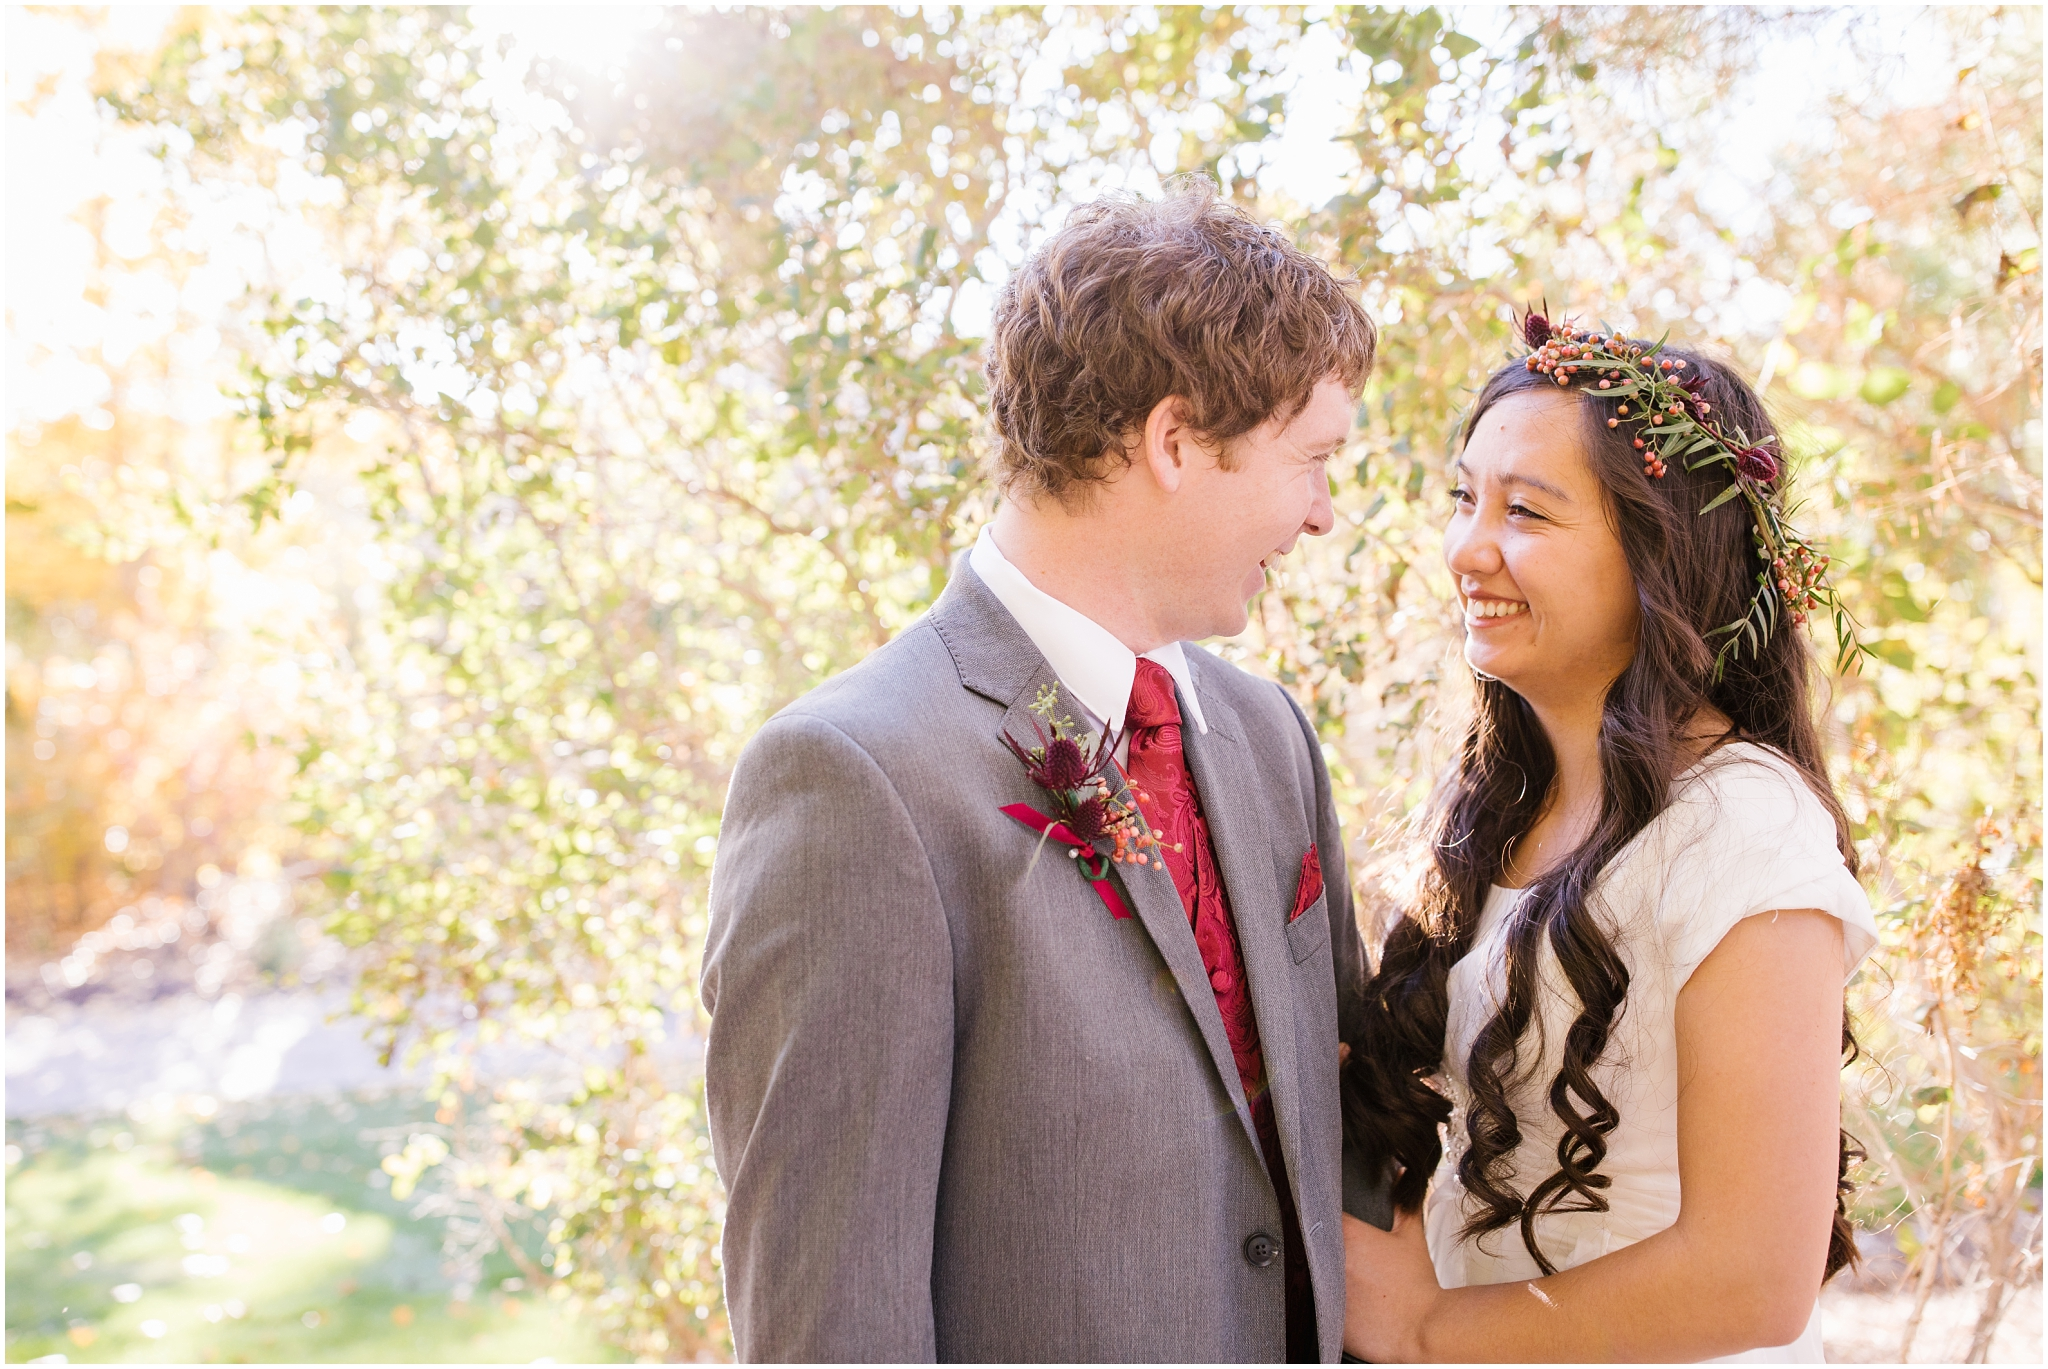 JB-Bridals-65_Lizzie-B-Imagery-Utah-Wedding-Photographer-Utah-County-Thanksgiving-Point-Ashton-Gardens.jpg